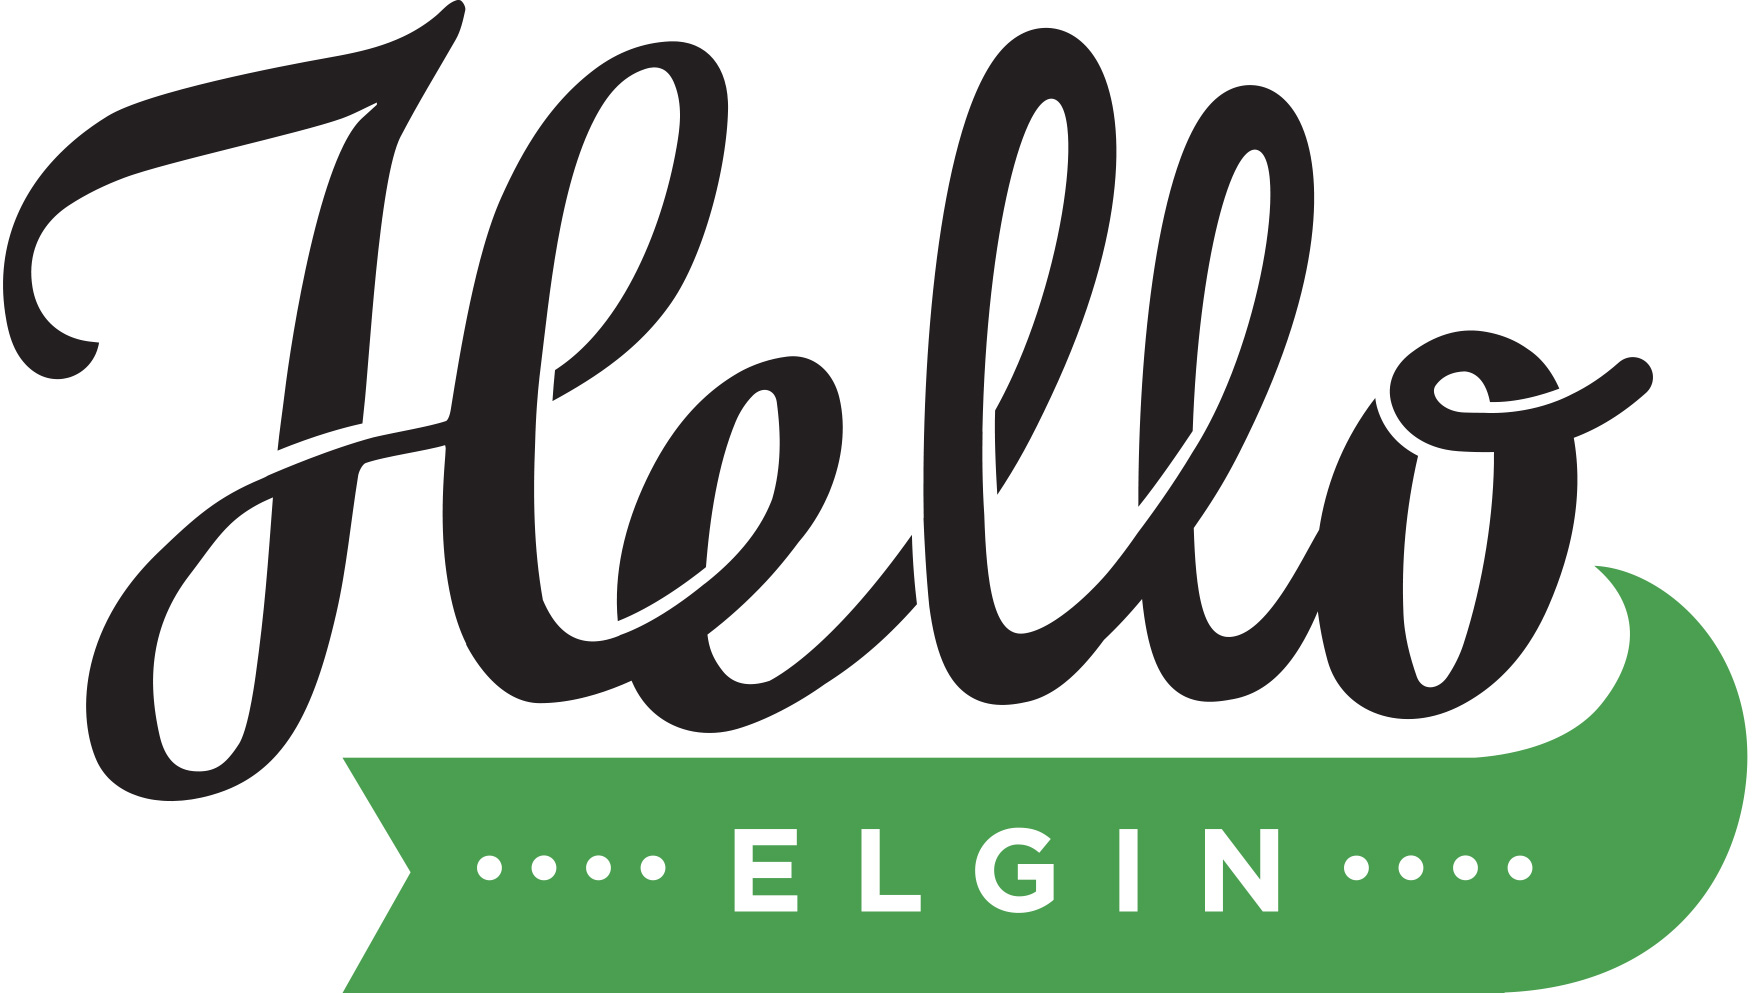 FORMAL-Hello-Elgin.jpg